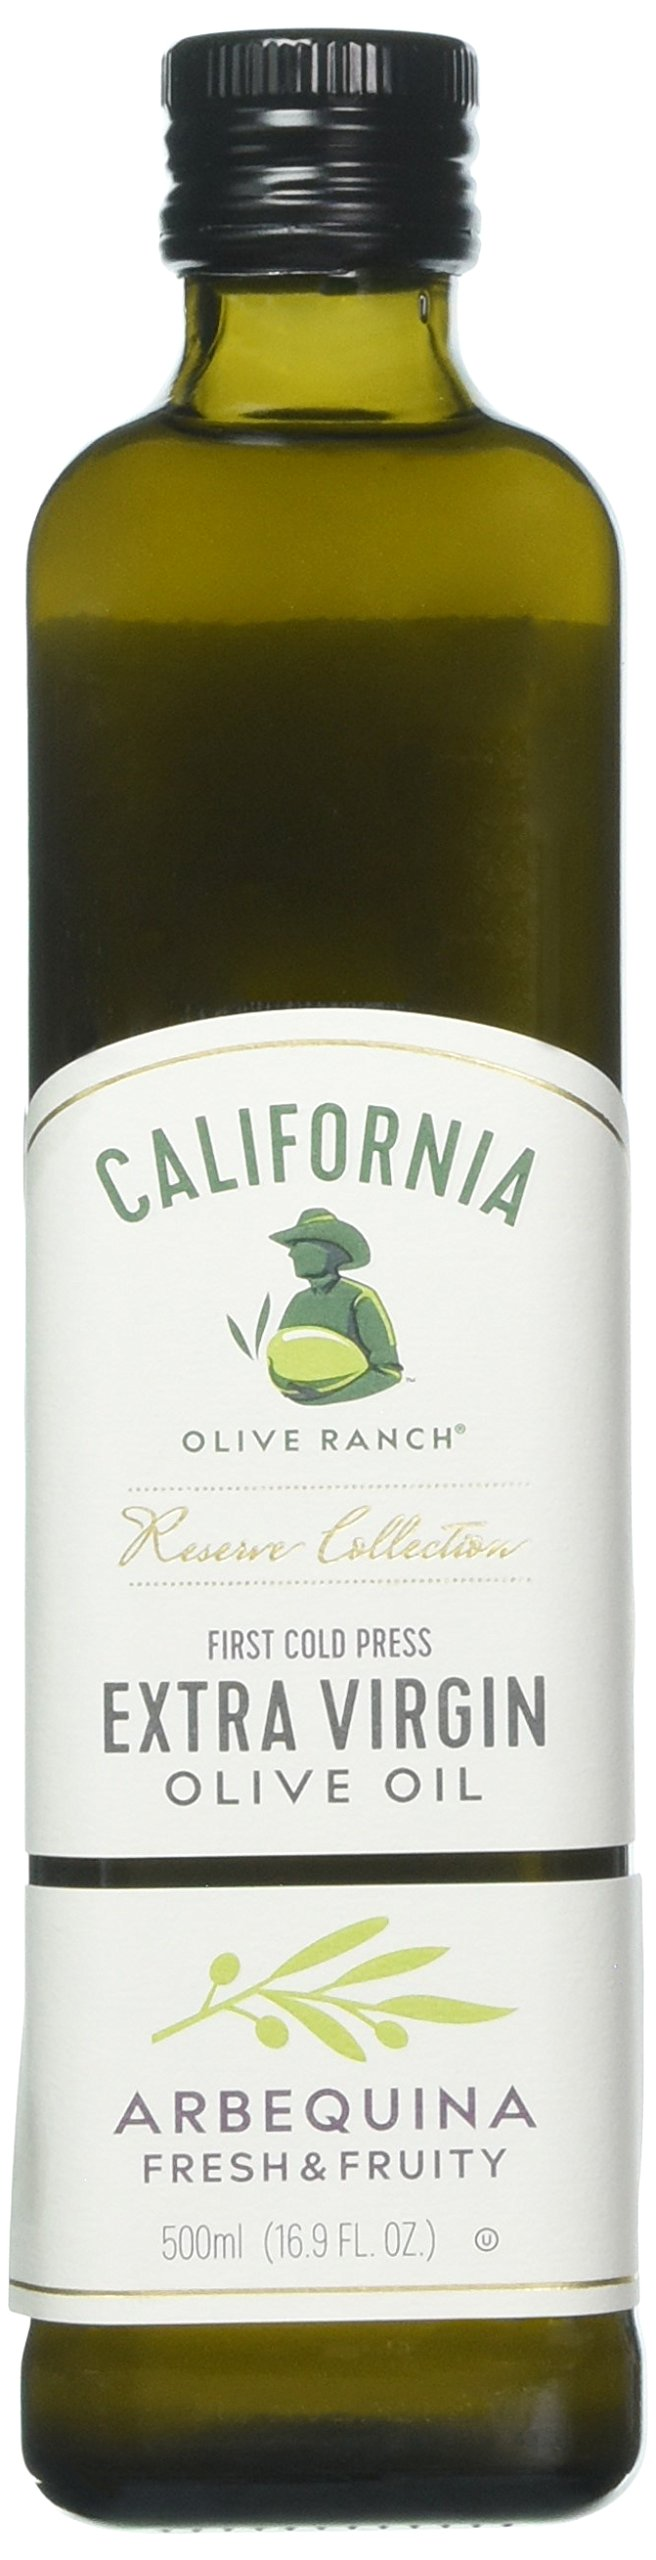 California Olive Ranch Arbequina Extra Virgin Olive Oil, 16.9 Fl Oz